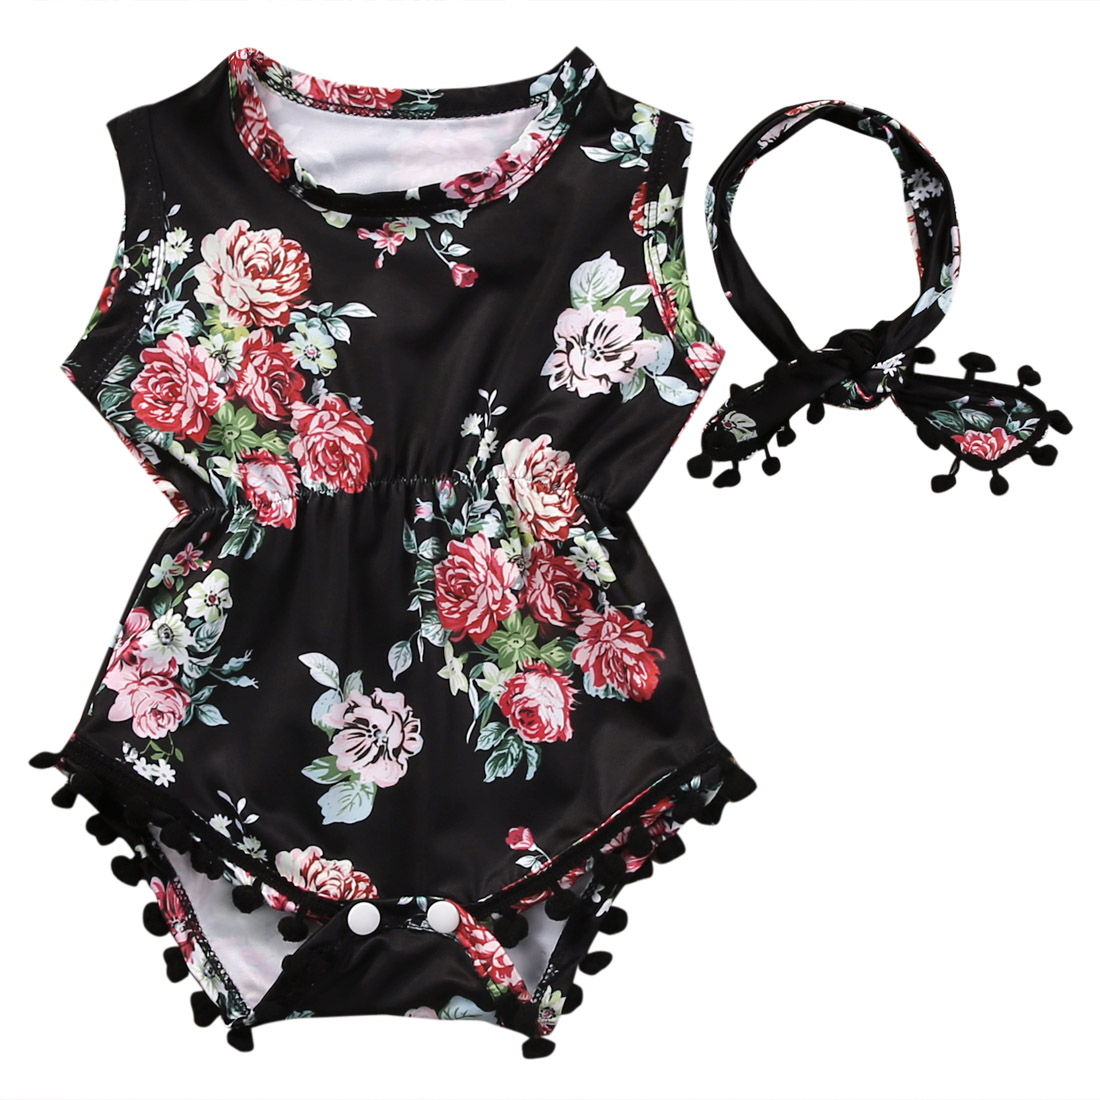 1b7c13cb5b7 Newborn VIntage Purple Flowers Floral Baby Girls Clothes Clothing Romper  Sunsuit One-pieces With Headband Outfits Set Wholesale